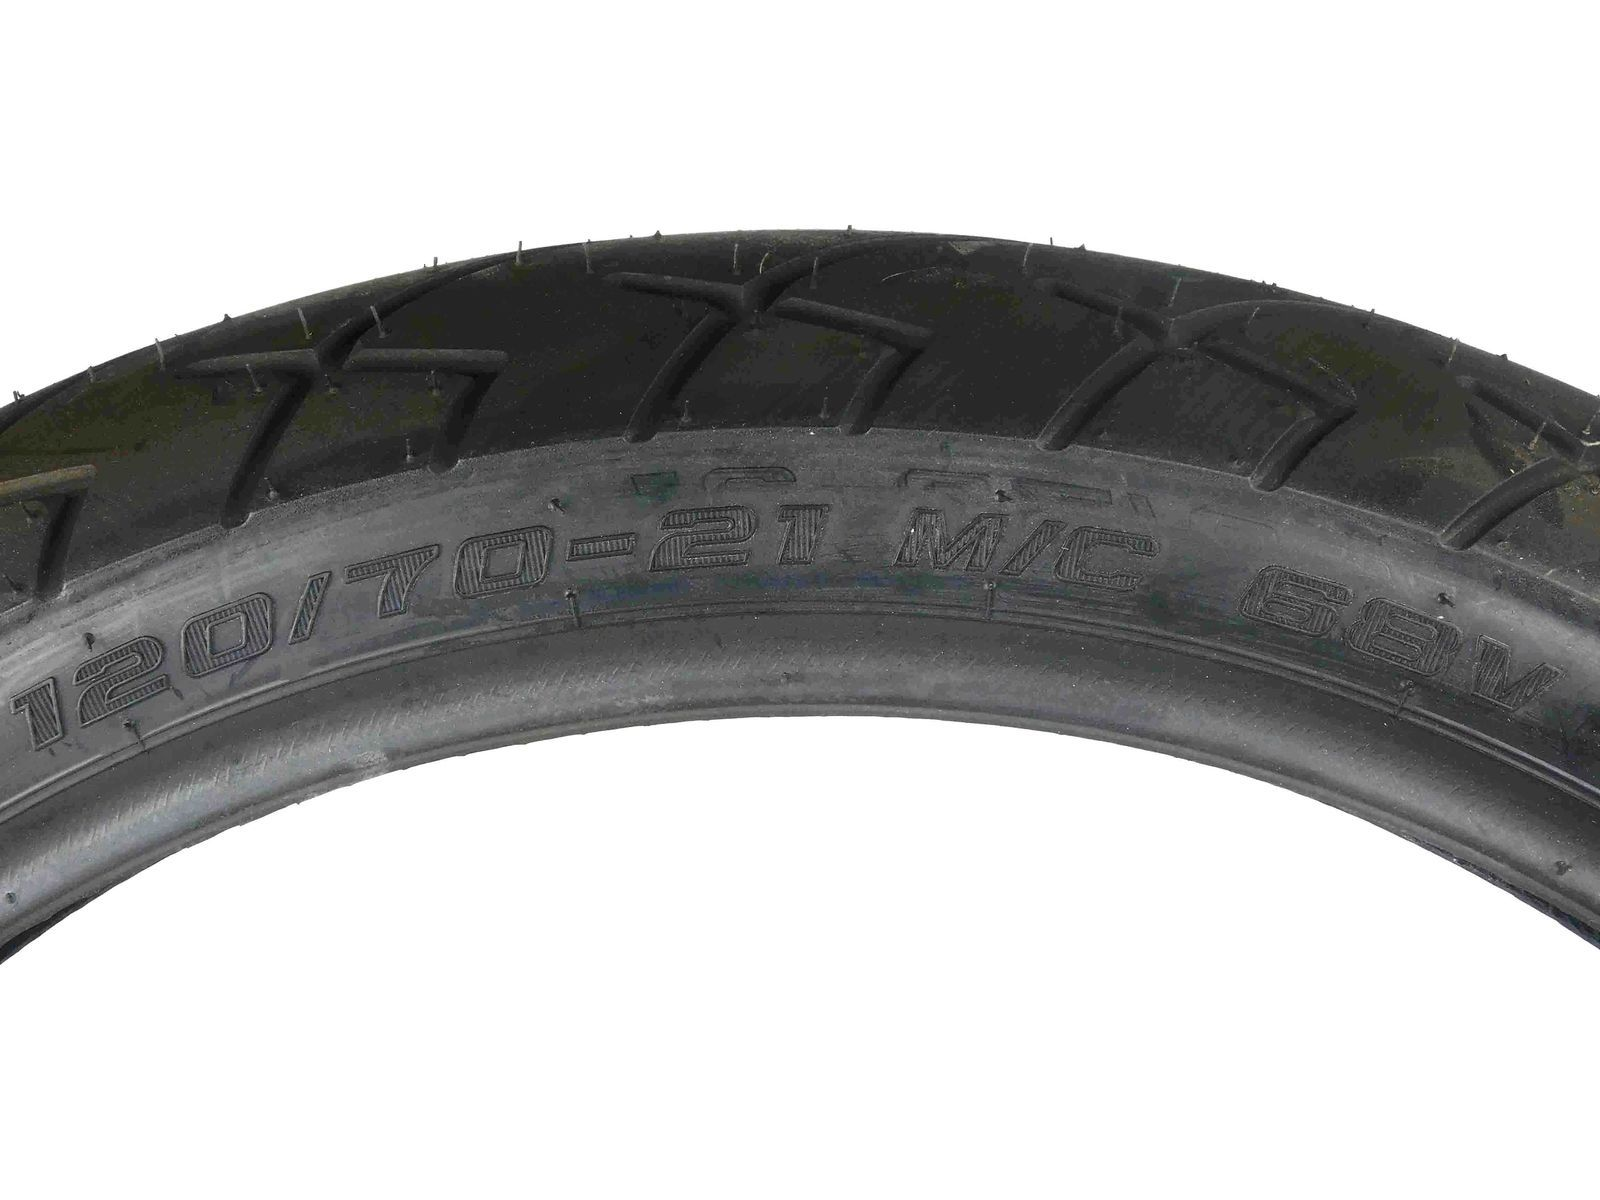 Full-Bore-120-70-21-Front-140-90-16-Tour-King-Cruiser-Motorcycle-Tires-image-3